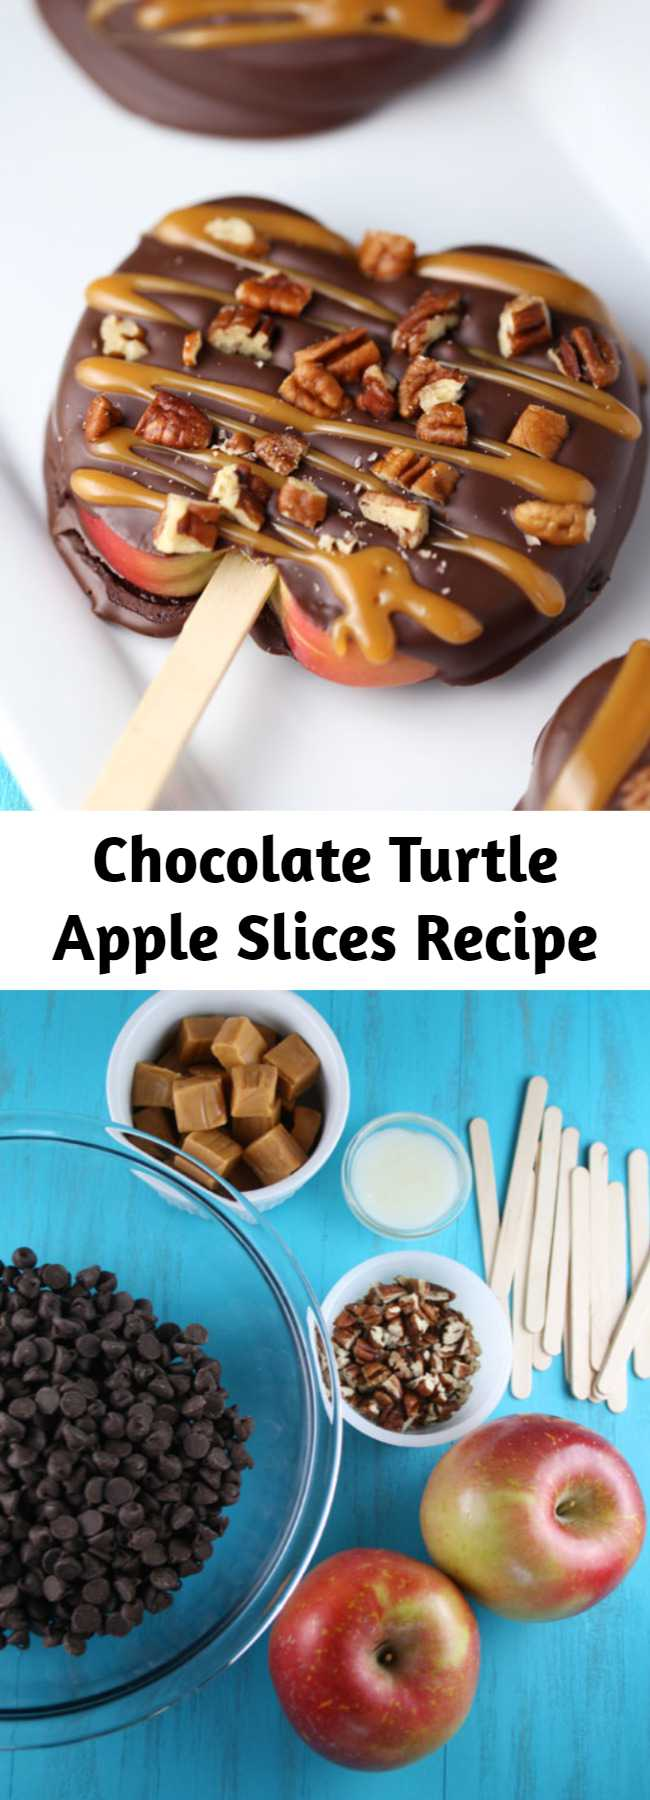 Chocolate Turtle Apple Slices Recipe - Chocolate Turtle Apple Slices are thick slices of Fuji apples covered in melted chocolate, drizzled with caramel and topped with nuts.